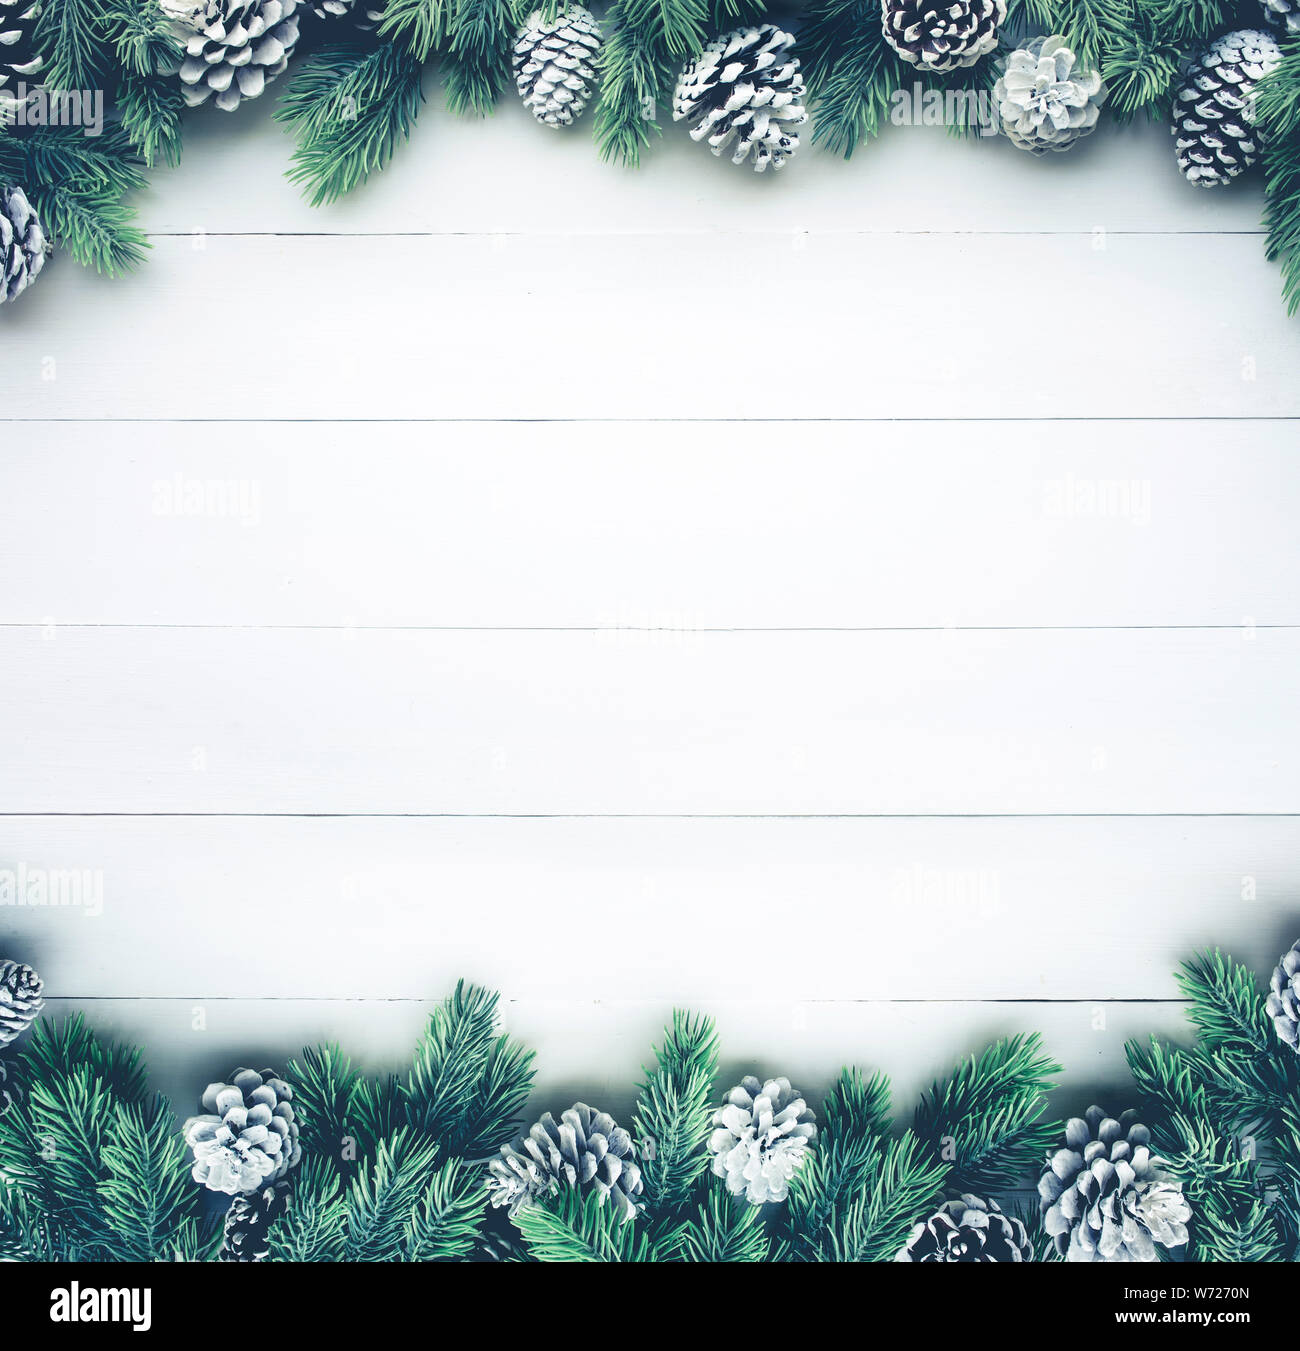 Christmas Branch Decoration Ideas.Christmas Fir Tree With Pine Branch Decoration On White Wood